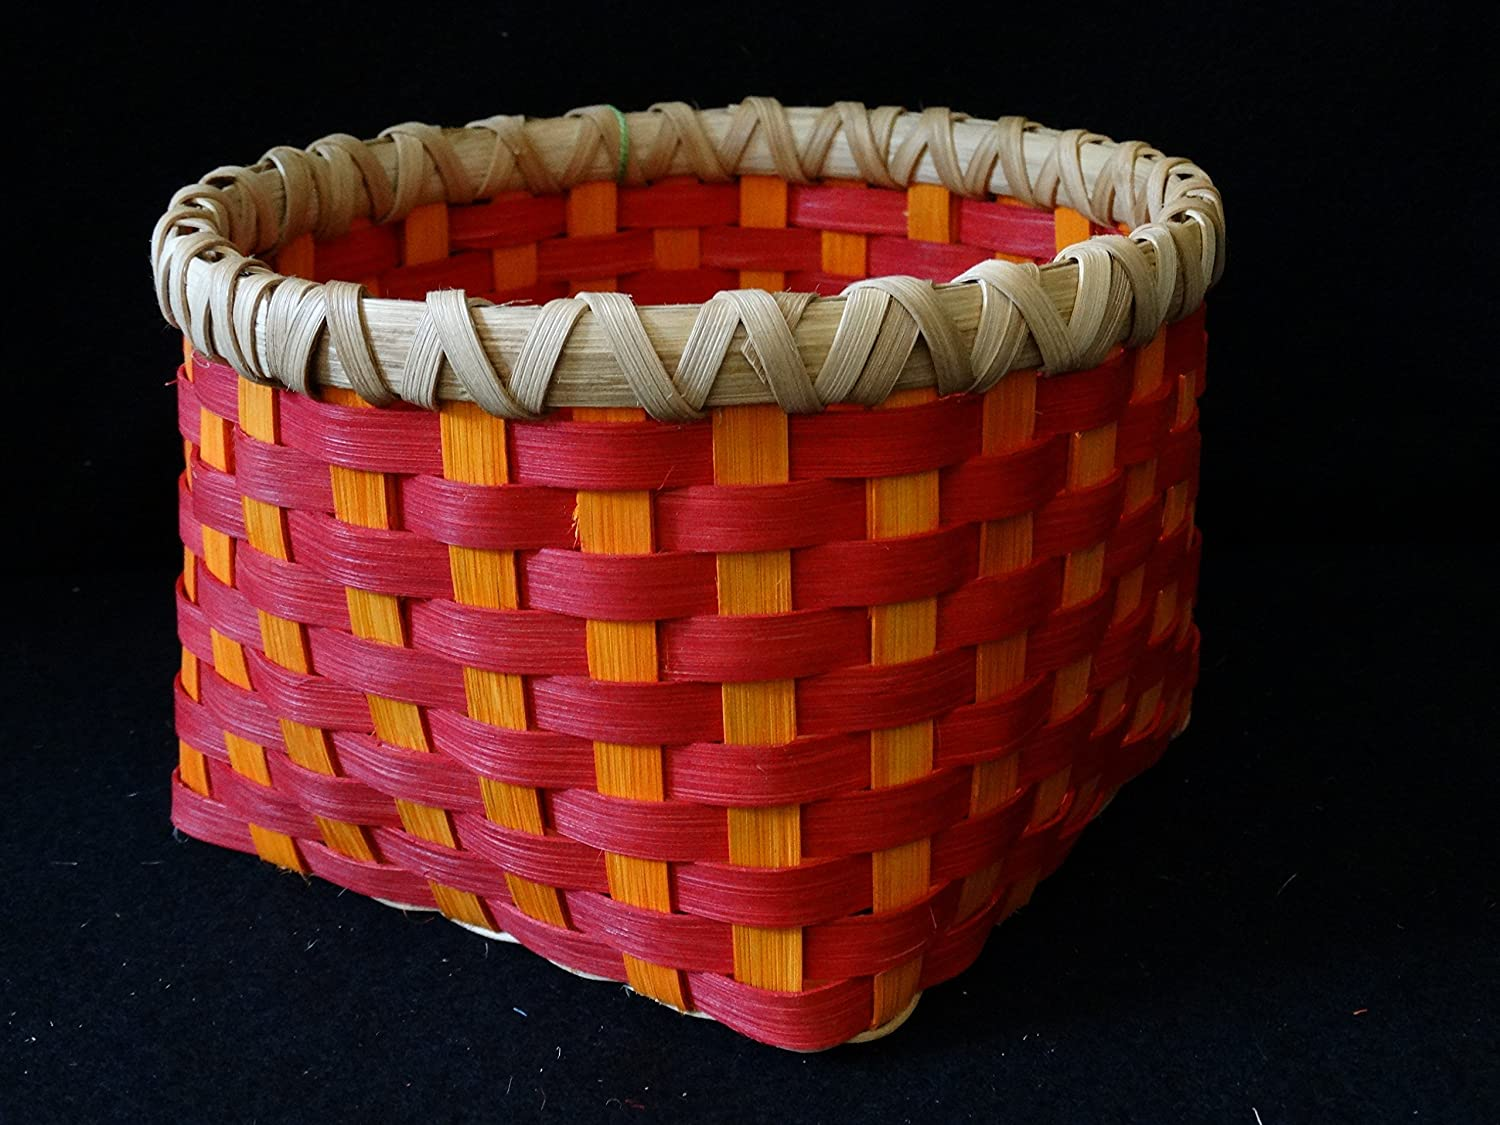 Hand Woven Direct sale of manufacturer Basket in Cherry Red and low-pricing Orange. Storage Bas Sunshine